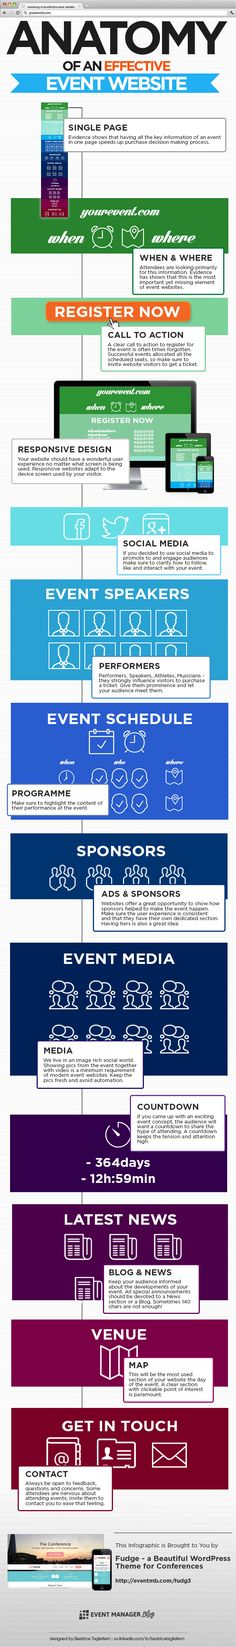 Anatomy of an Effective Event Websites #infografia #infographic #marketing